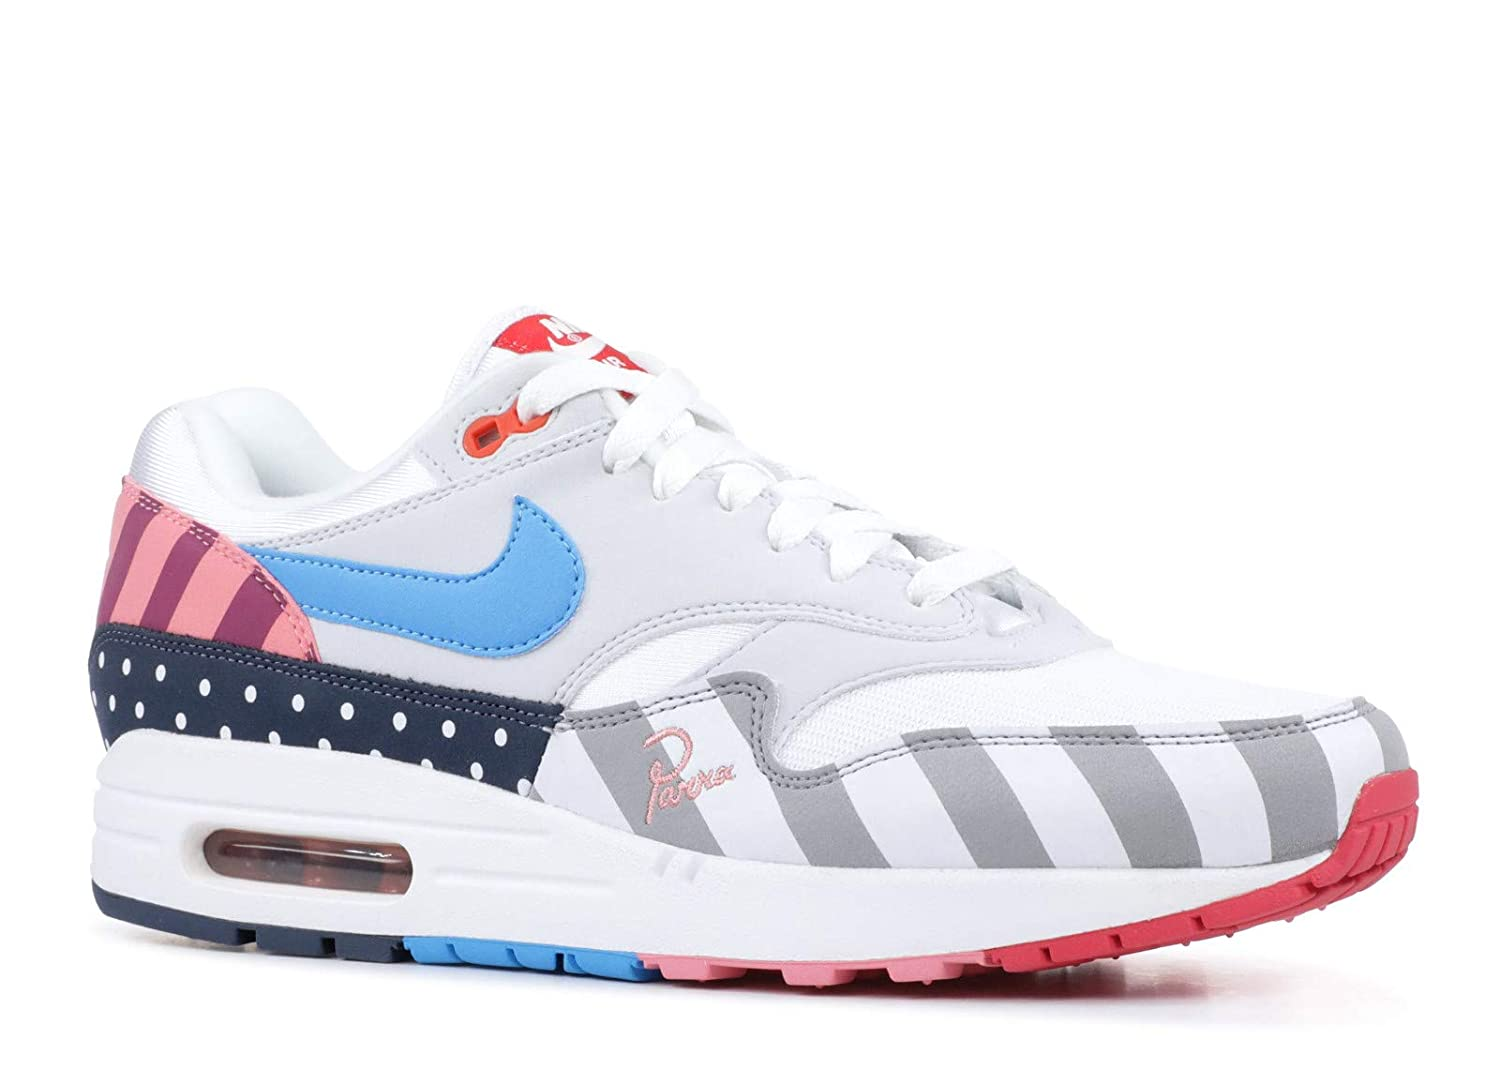 fa2f3add68 Amazon.com | Nike Air Max 1 Parra - US 7 White/Pure Platinum | Fashion  Sneakers